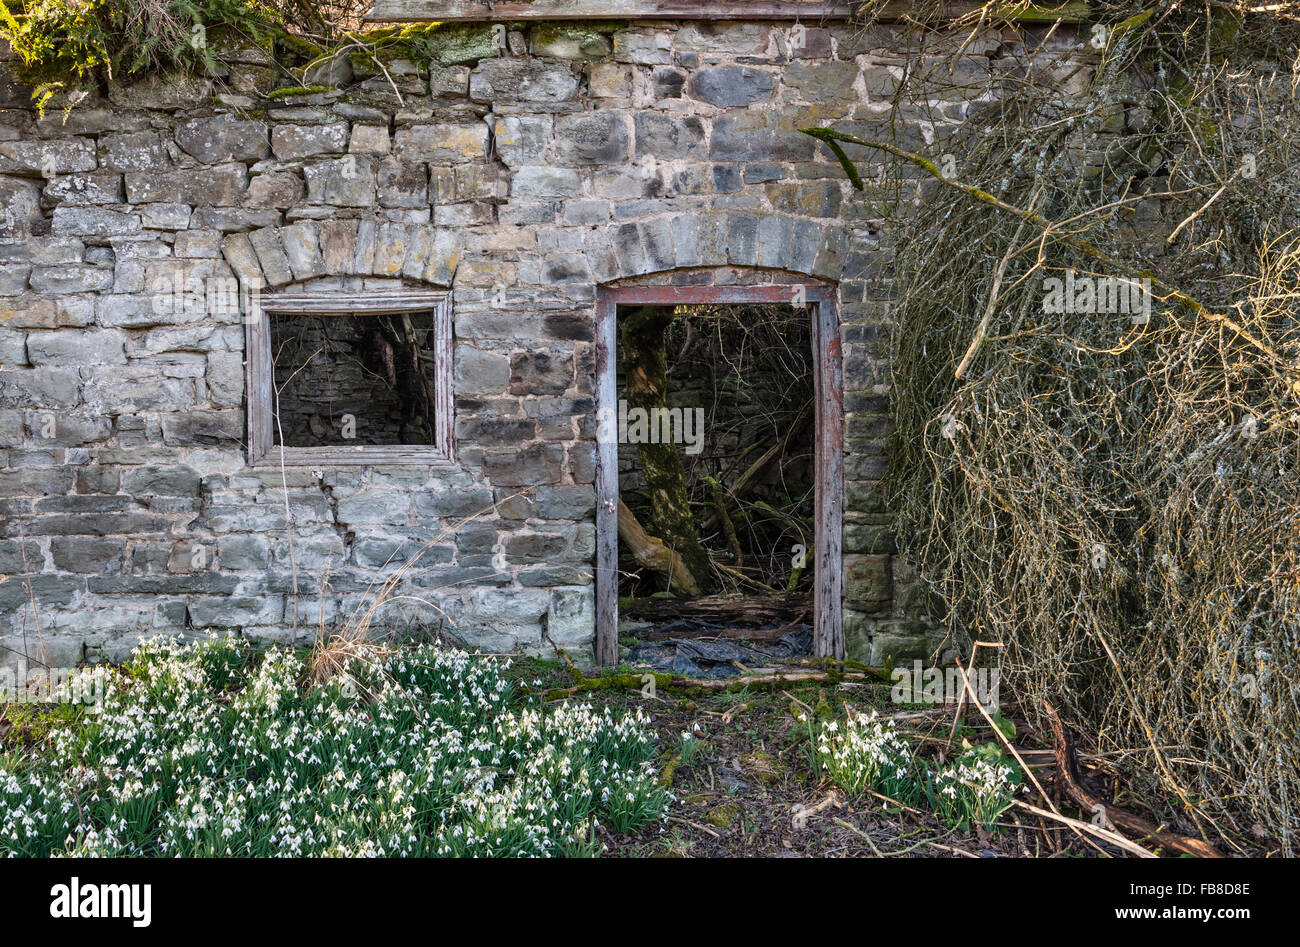 Herefordshire, UK. A remote ruined cottage is surrounded by snowdrops in winter, the remains of its garden - Stock Image